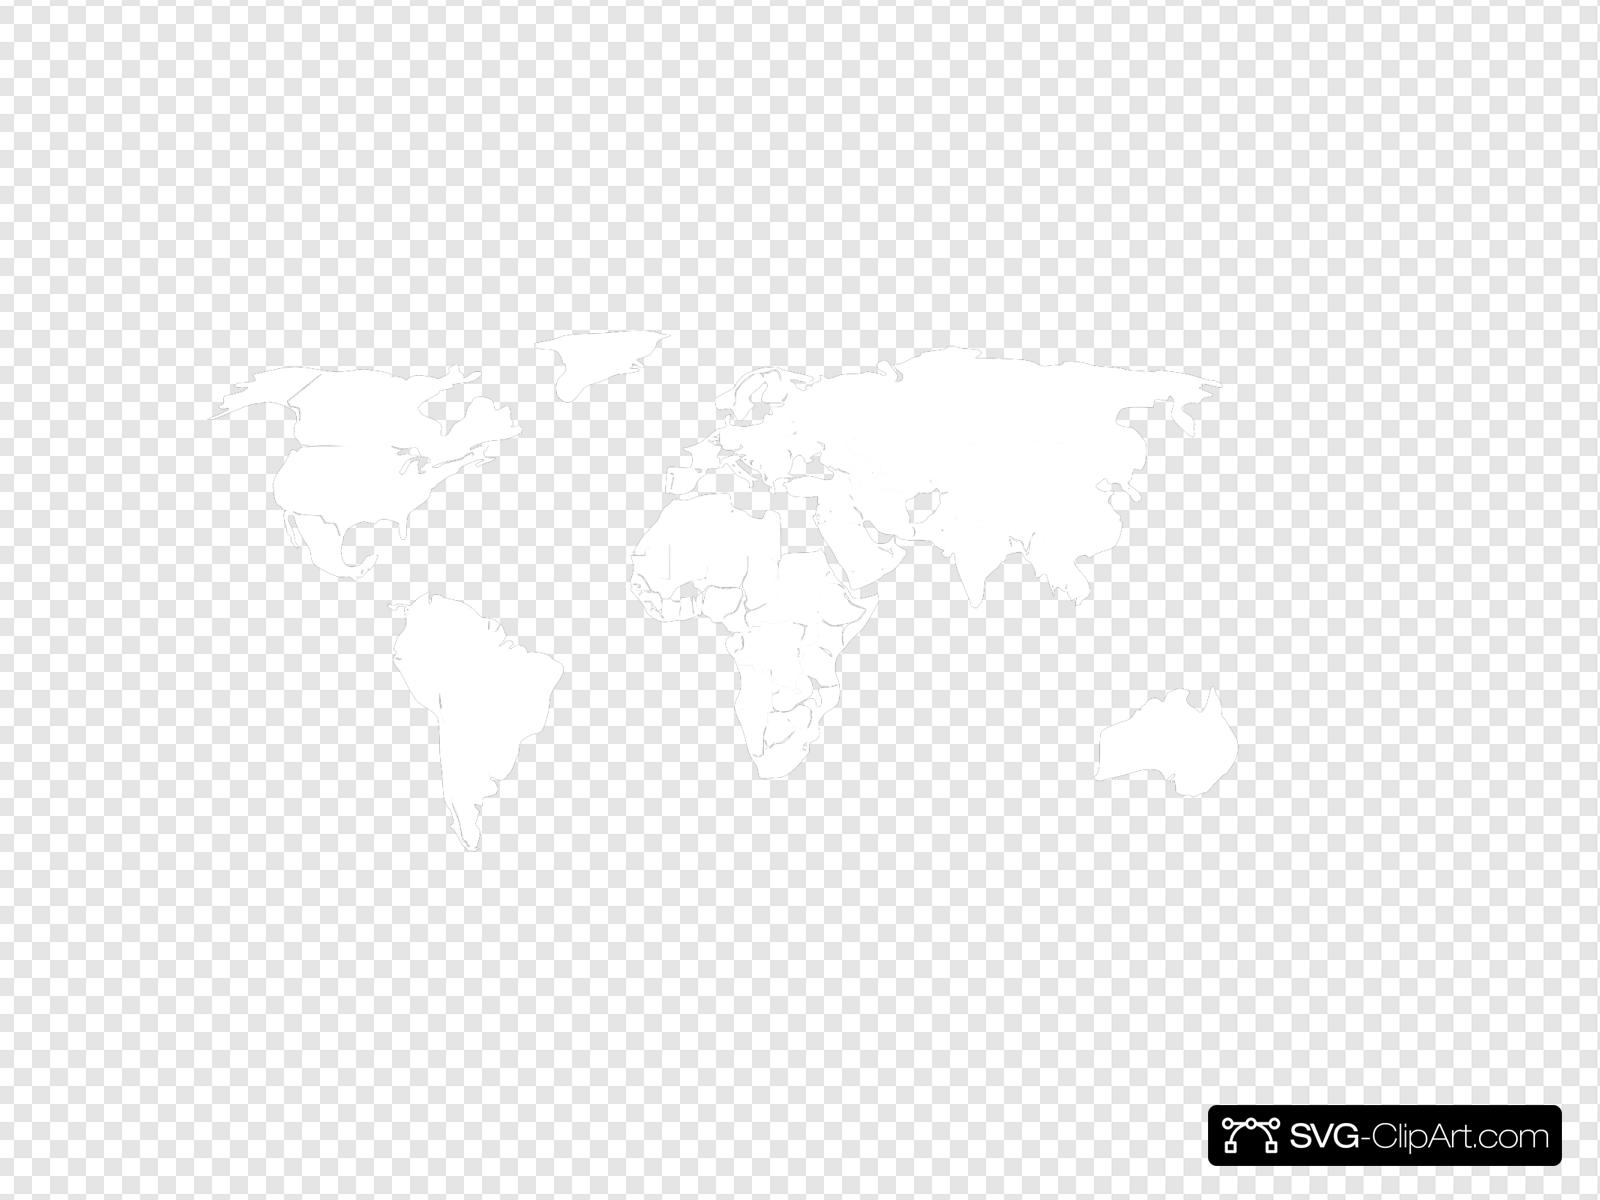 Black White Outline World Map No Background Clip Art Icon And Svg